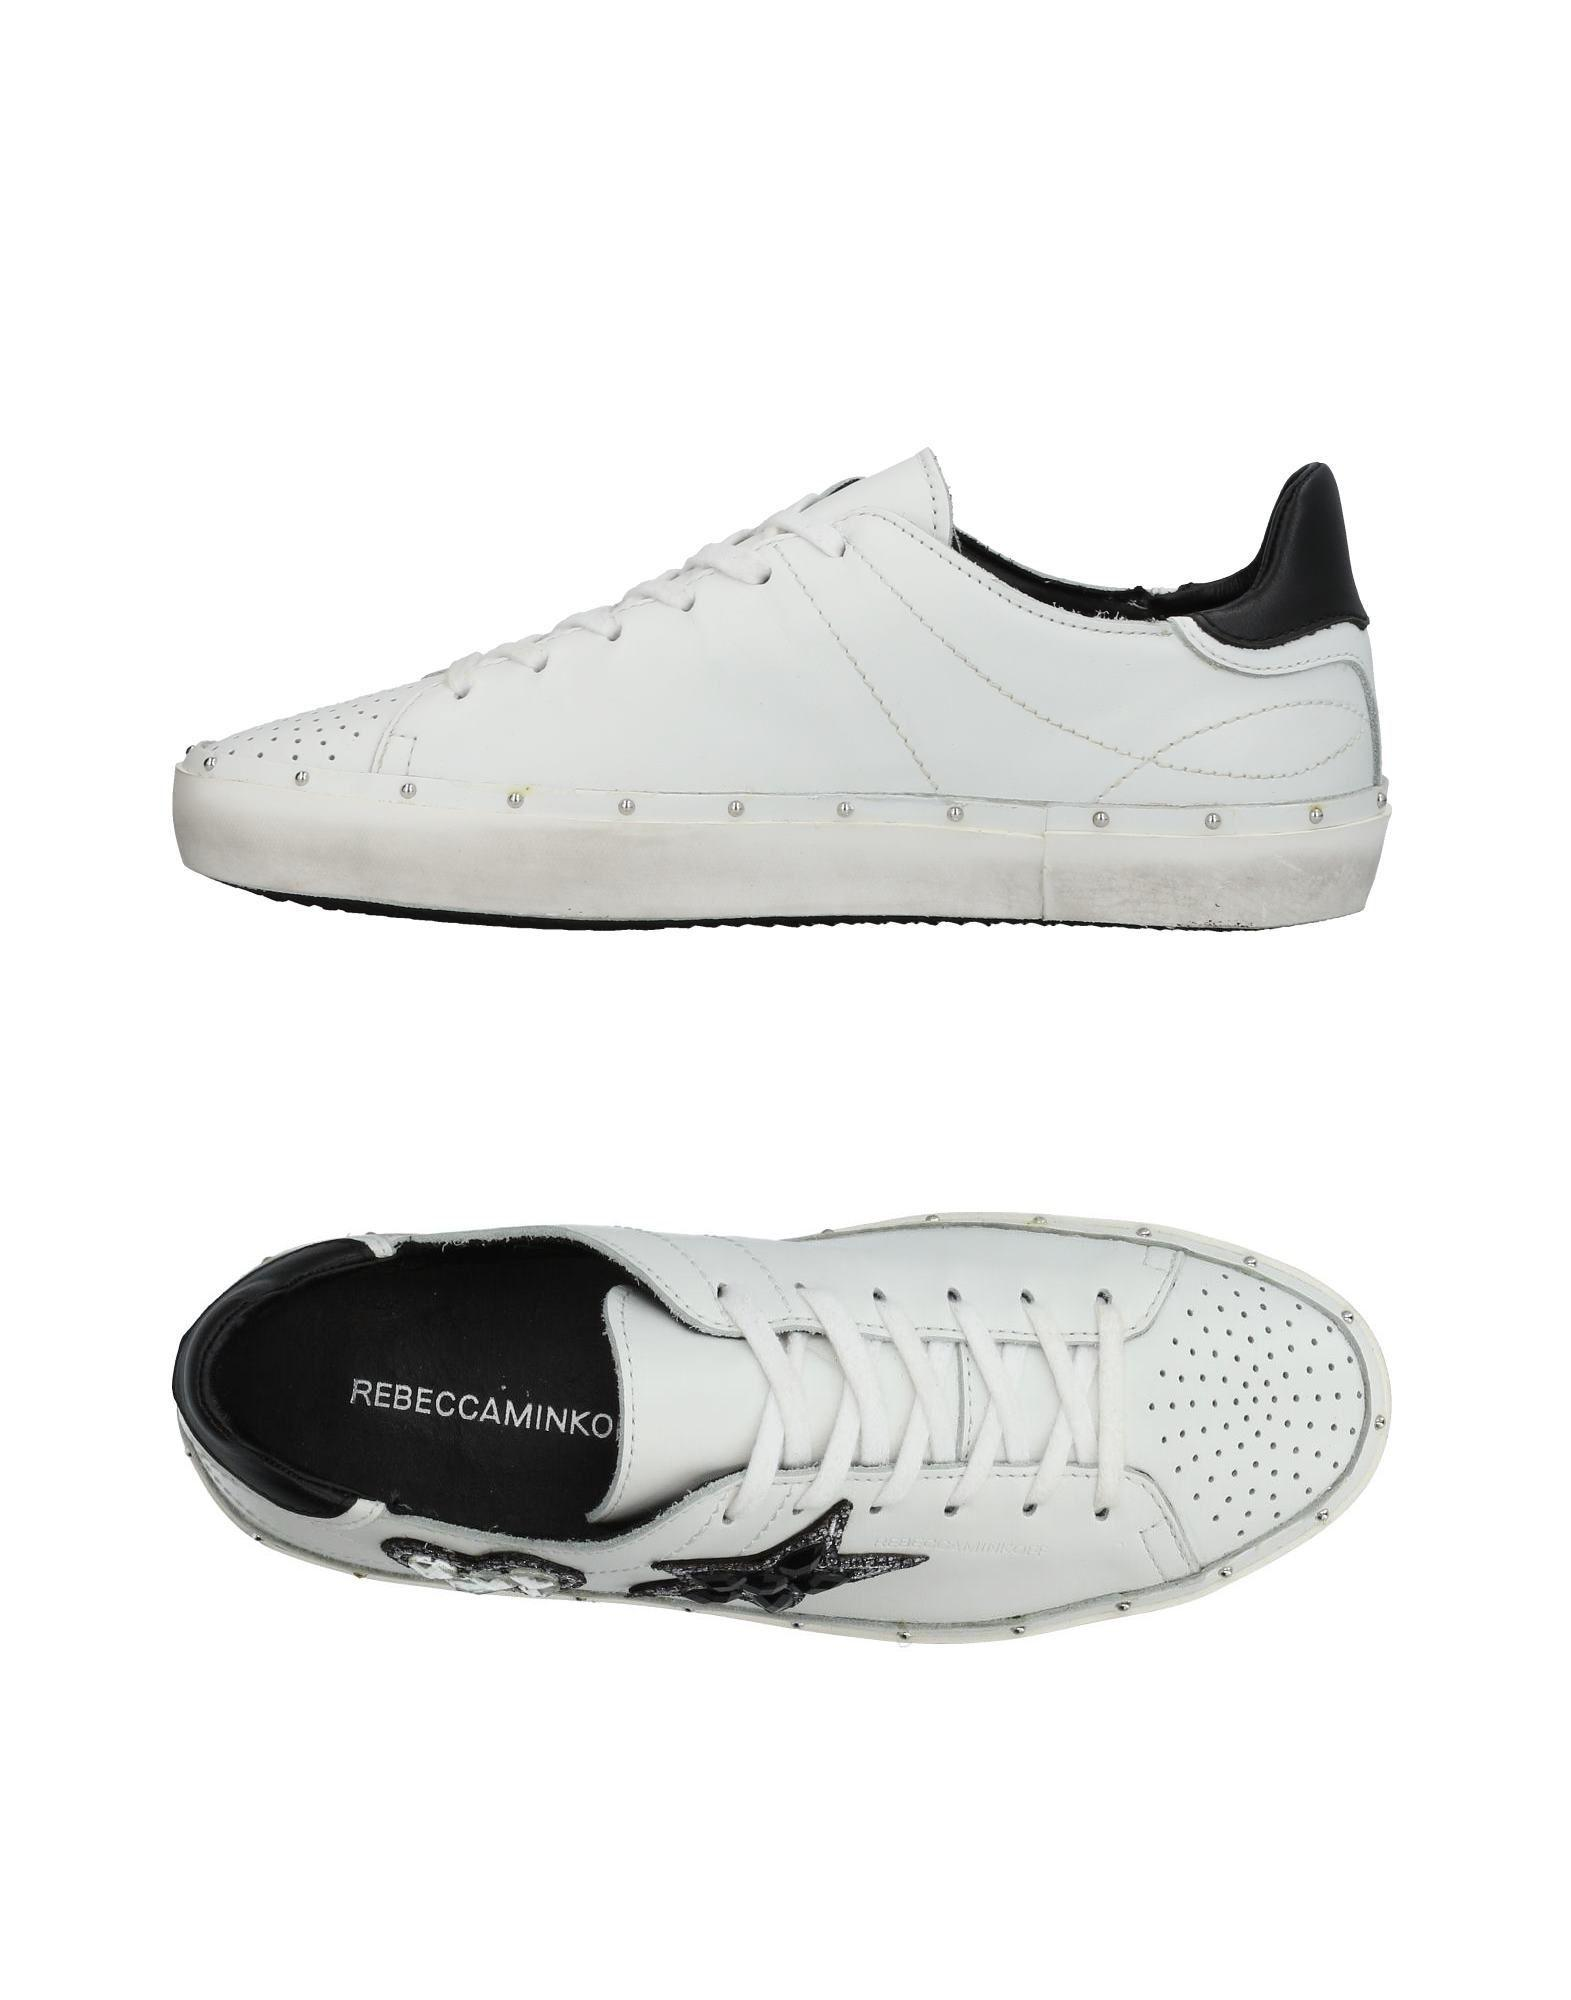 FOOTWEAR - Low-tops & sneakers Uri Minkoff hFLcQ63D